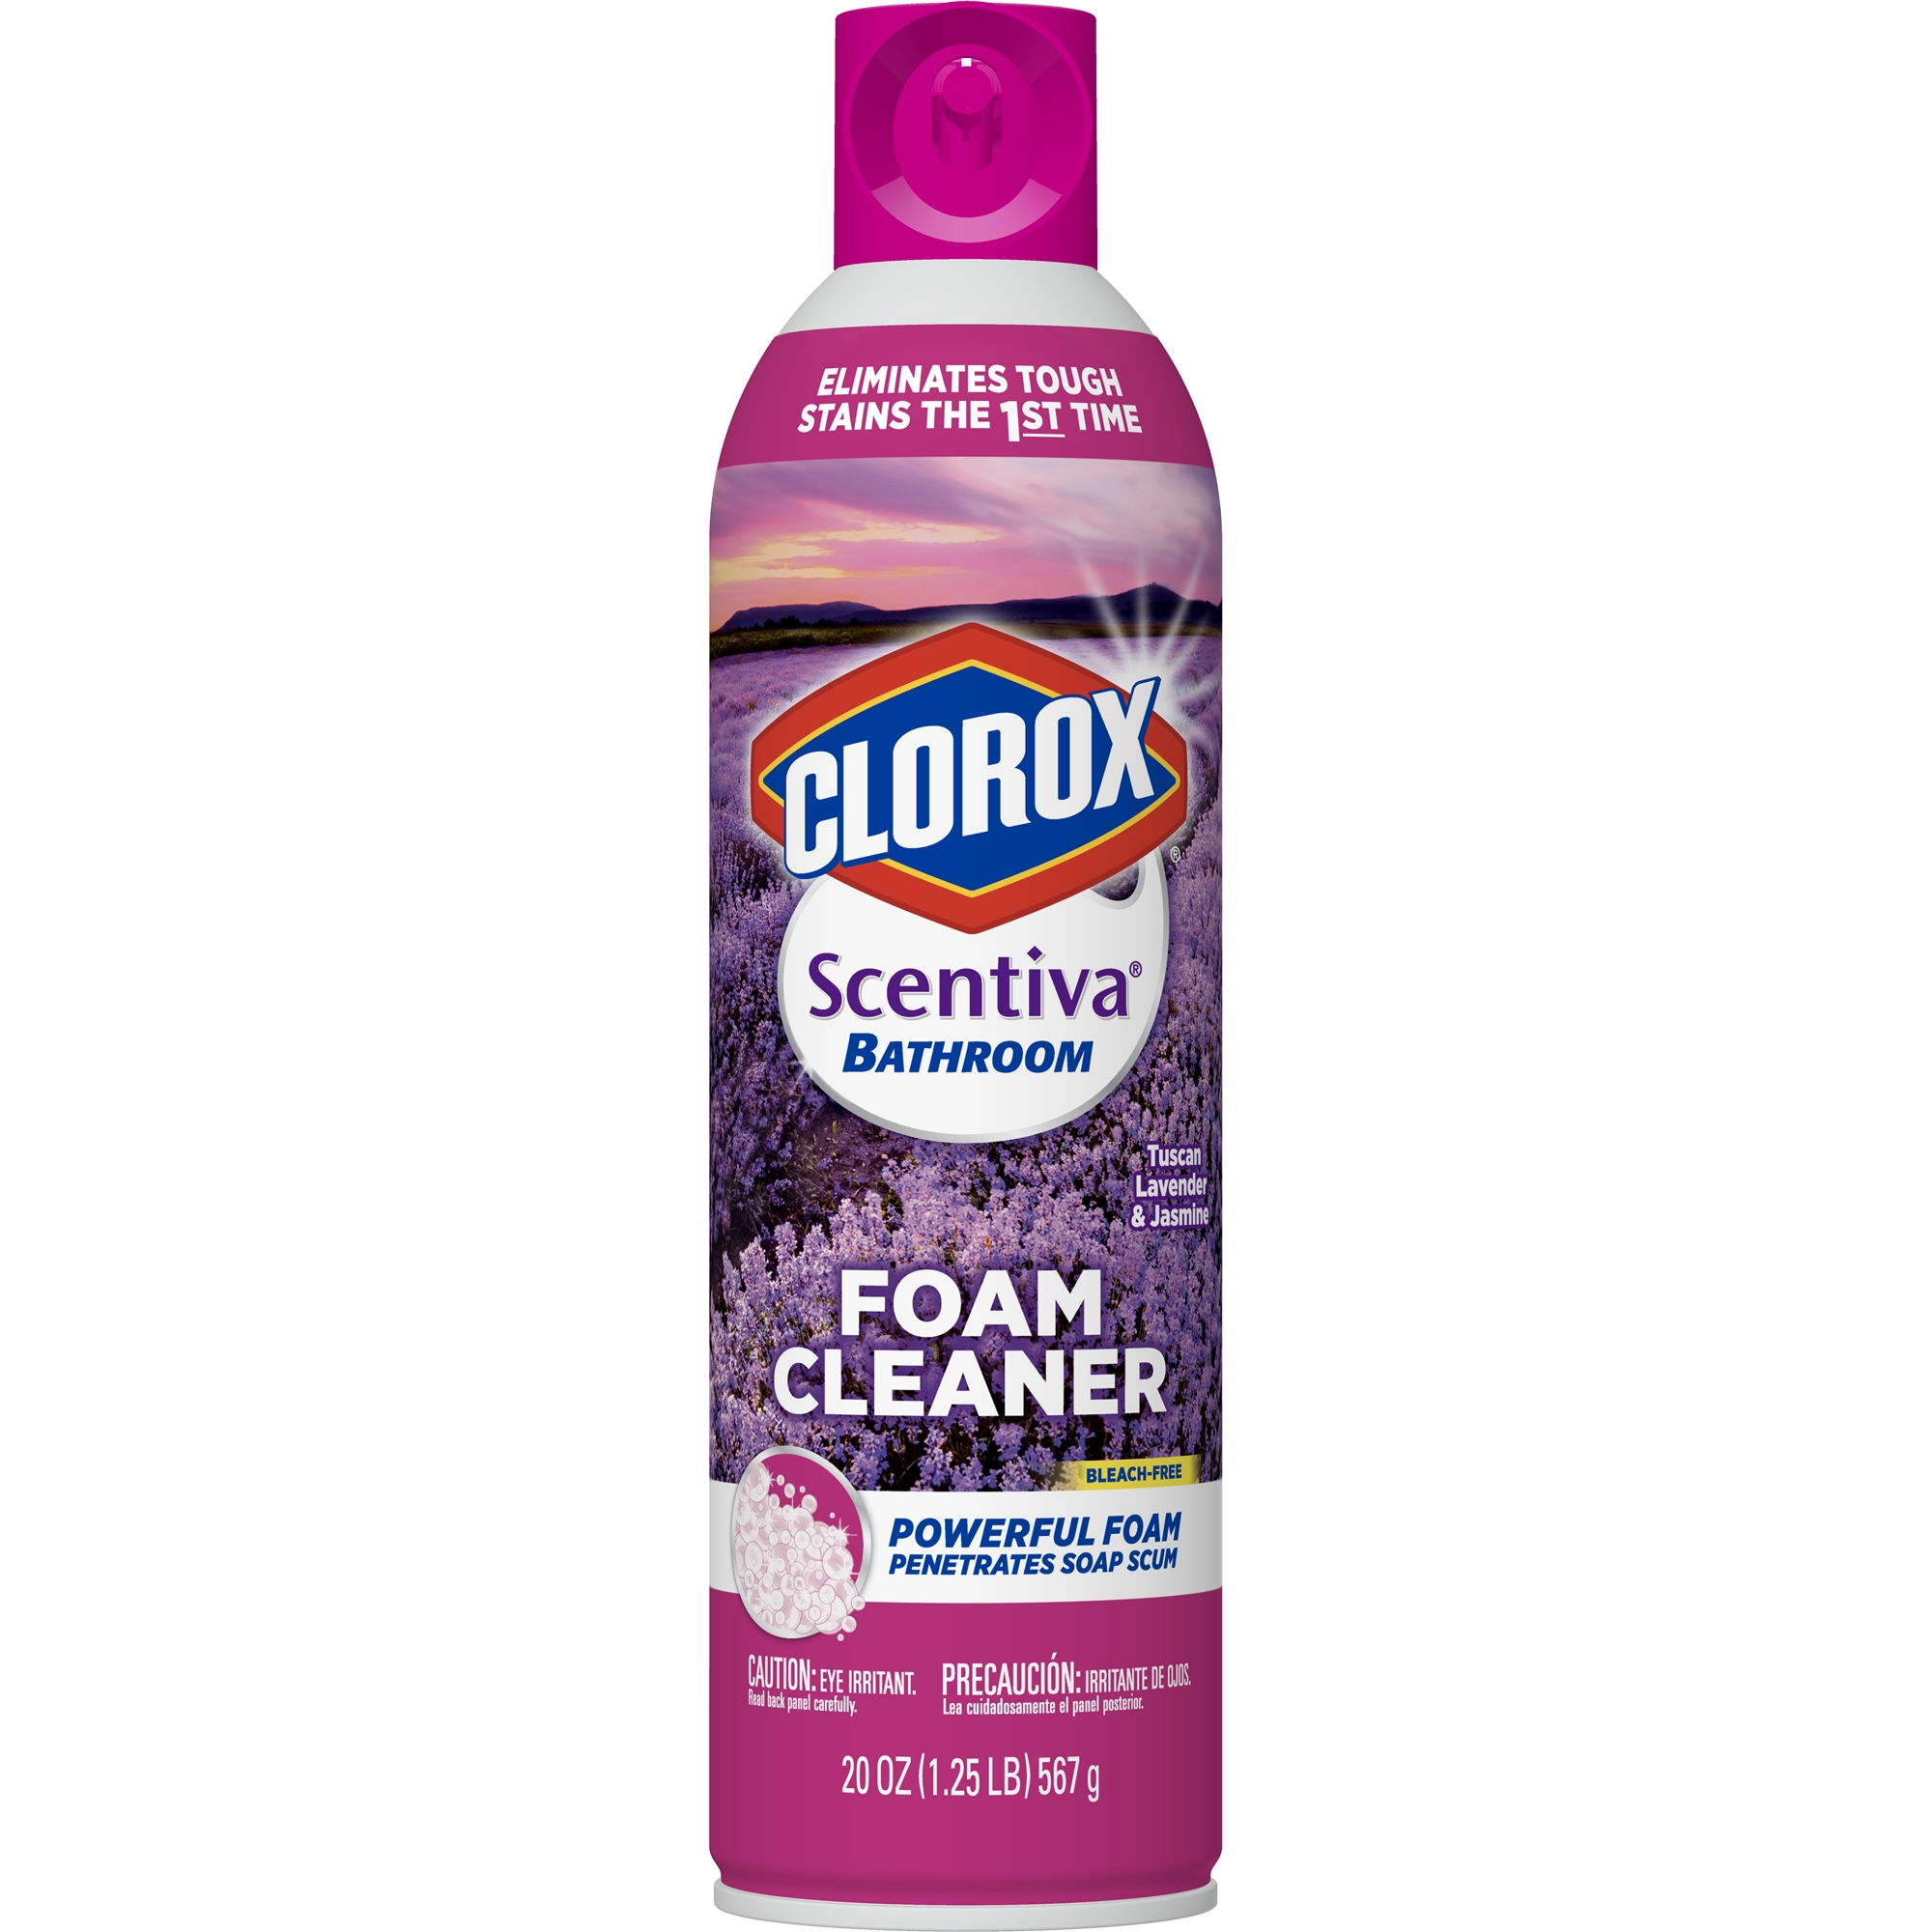 Clorox Scentiva Bathroom Foam Cleaner - Foaming Aerosol Multi-Surface Cleaner - Tuscan Lavender Jasmine - 20 oz